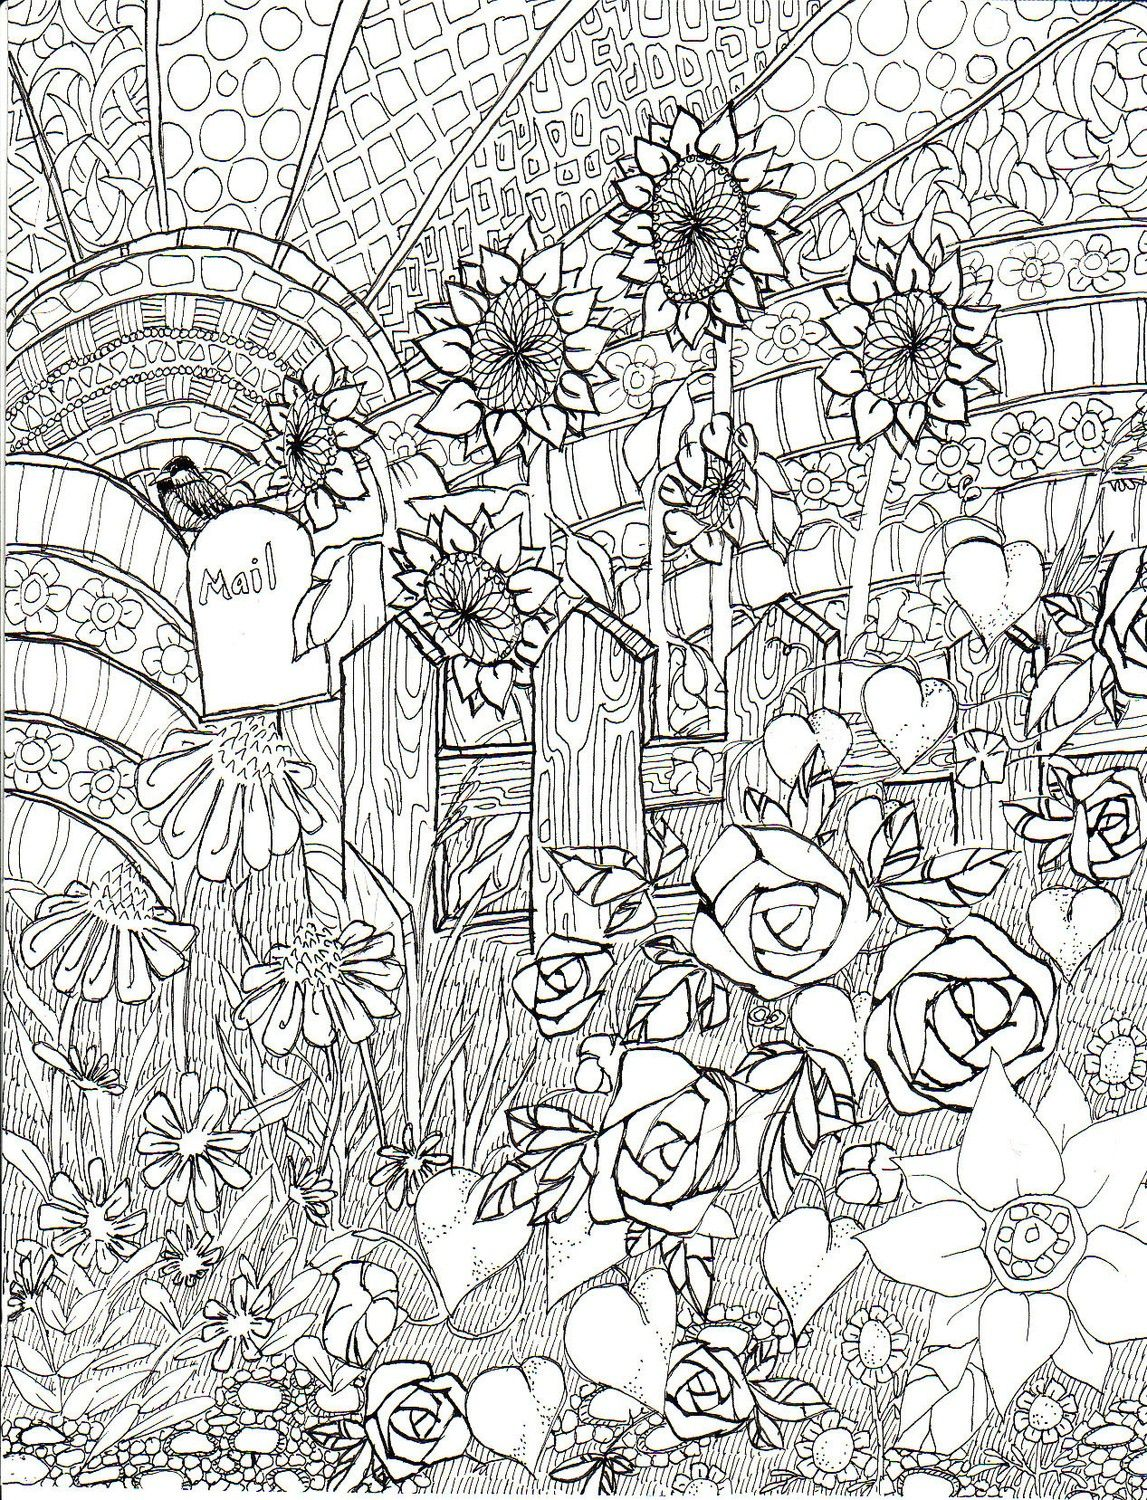 Summer garden coloring pages - Late Summer Garden Coloring Page Ink Illustration Life In Line Art 2 50